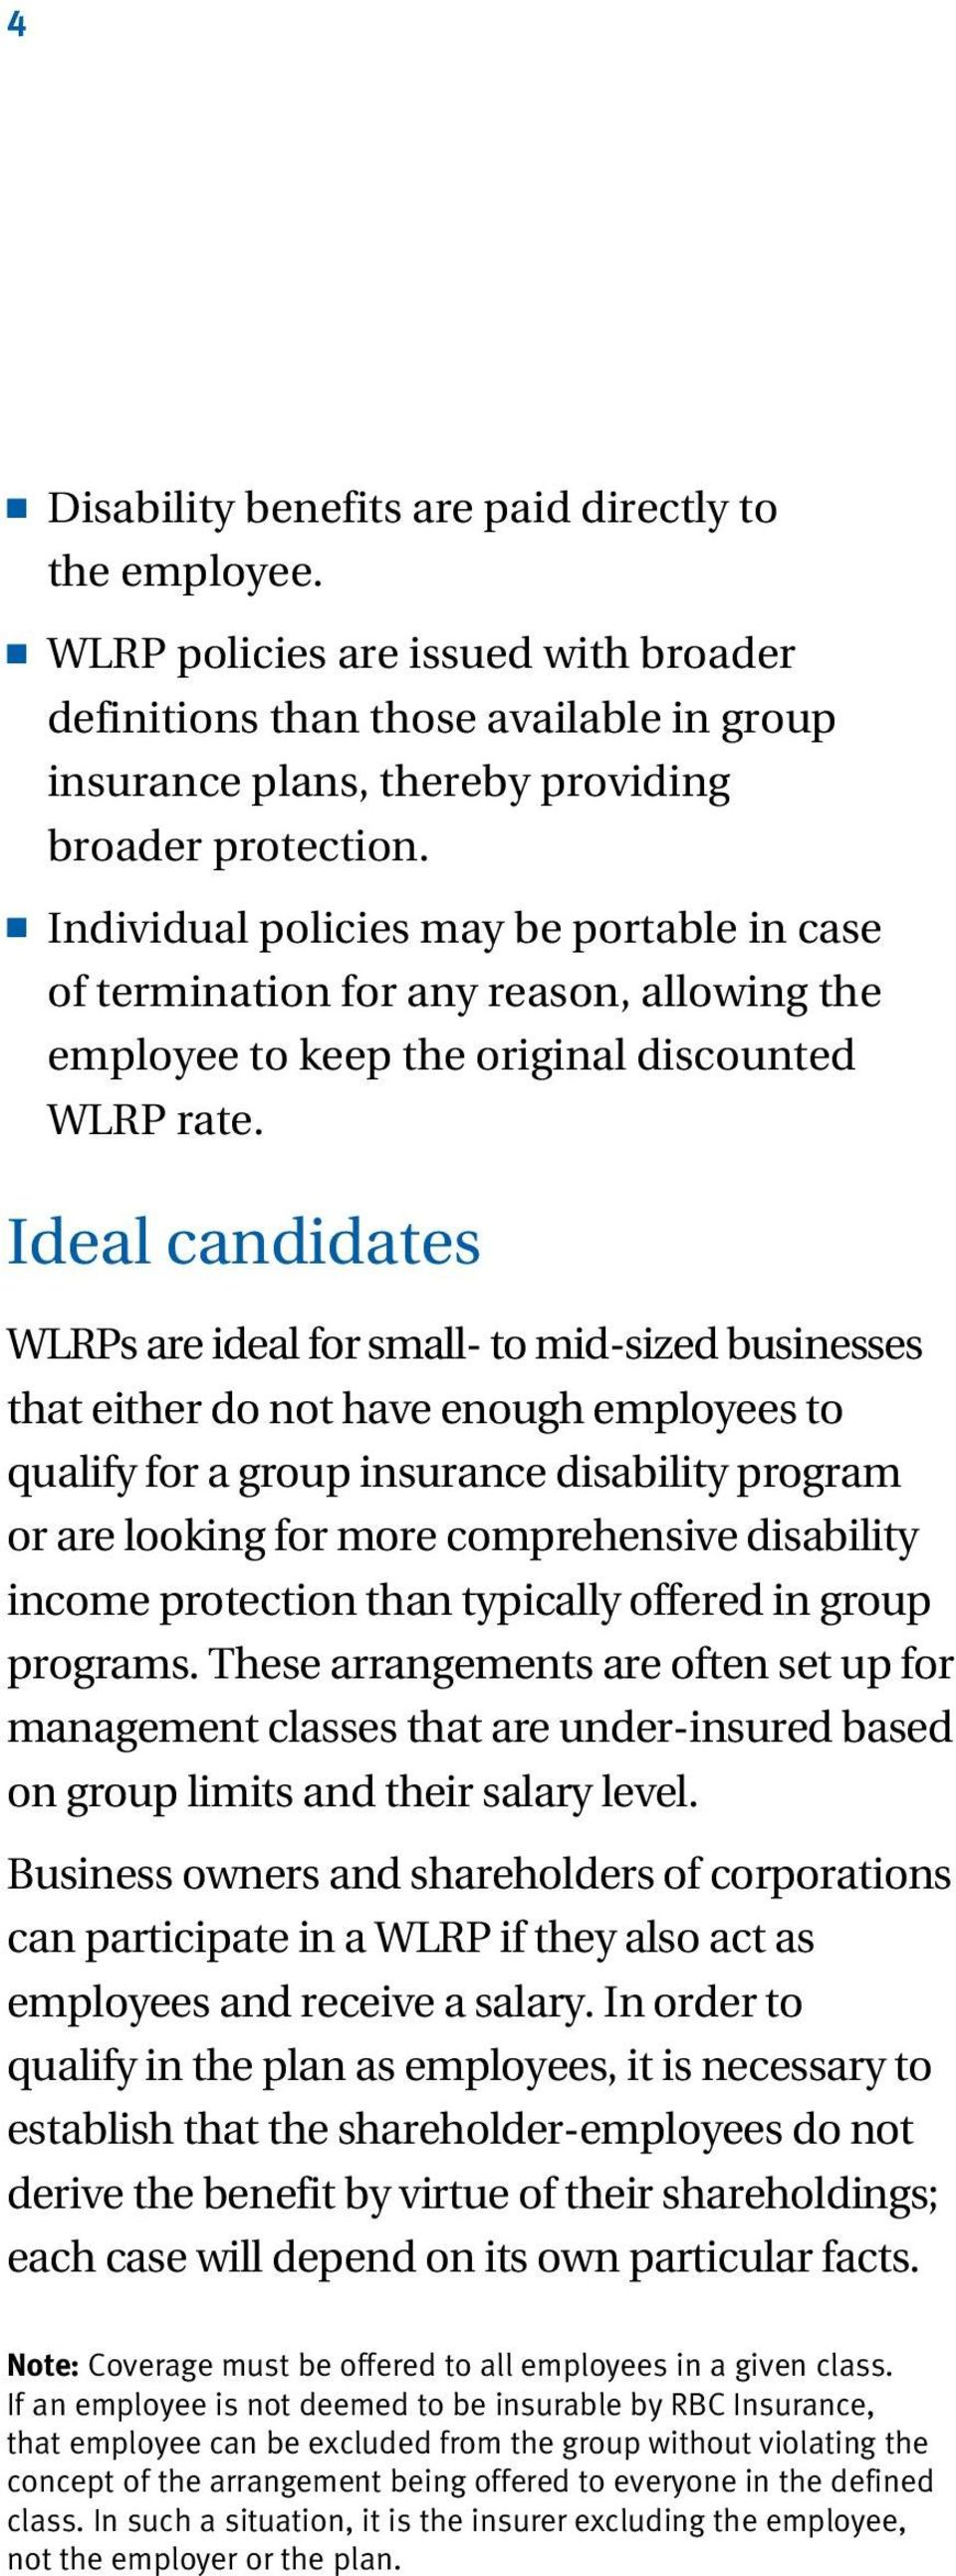 Ideal candidates WLRPs are ideal for small- to mid-sized businesses that either do not have enough employees to qualify for a group insurance disability program or are looking for more comprehensive